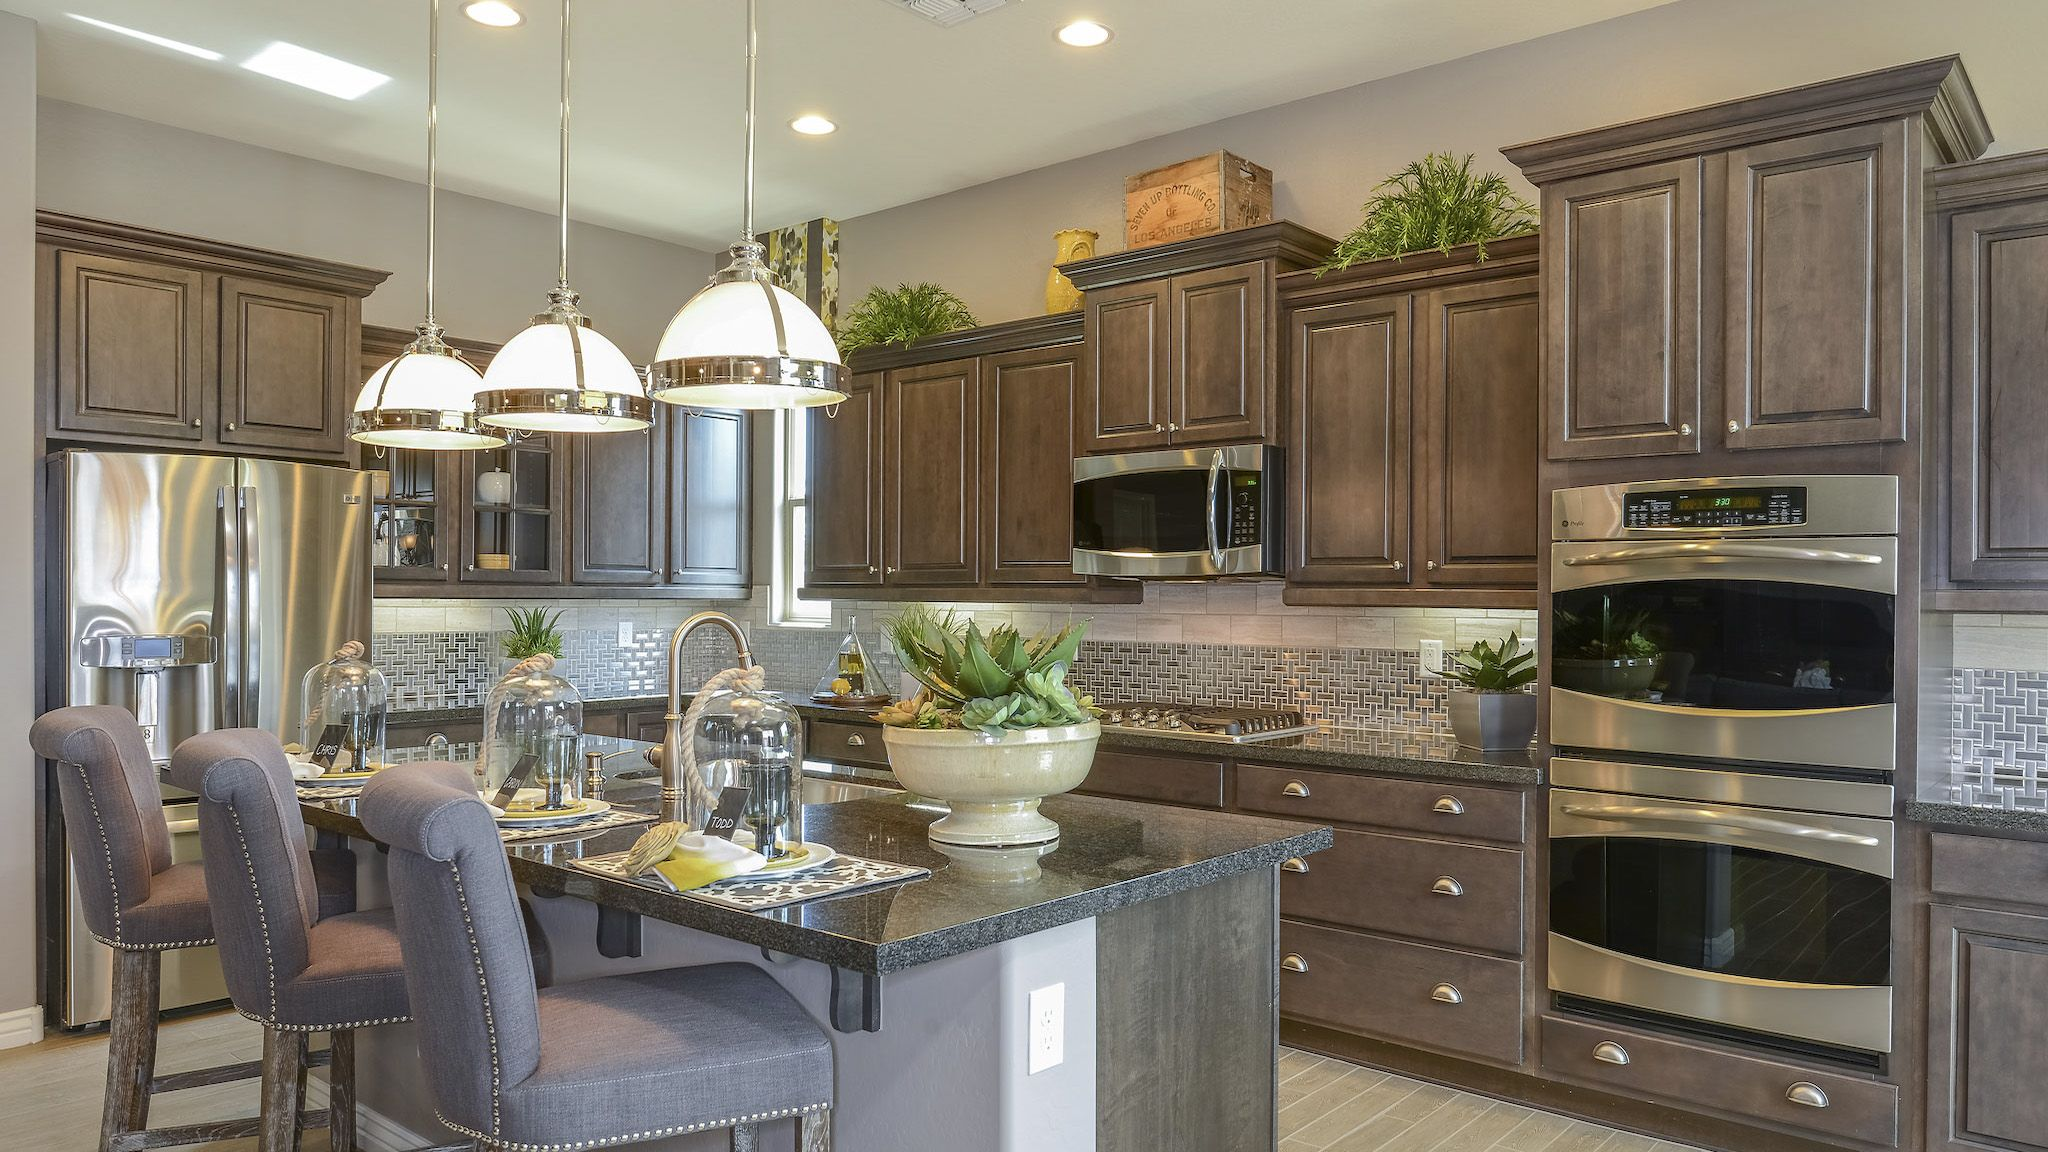 New Homes By Taylor Morrison Home Home Decor Kitchen New Homes